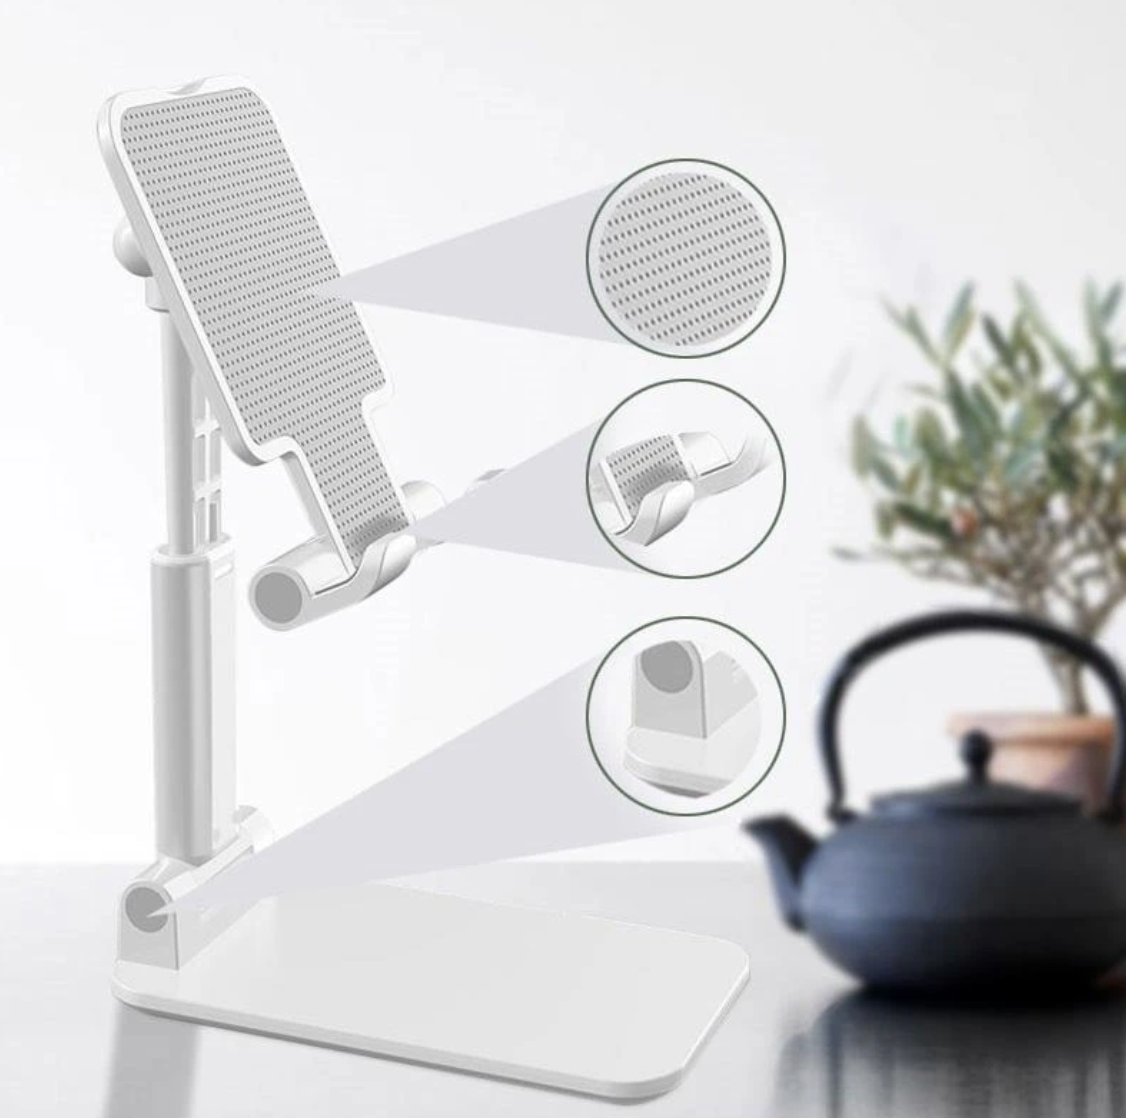 Ergonomic Adjustable Cell Phone Stand - Get 75% Discount – Wowelo